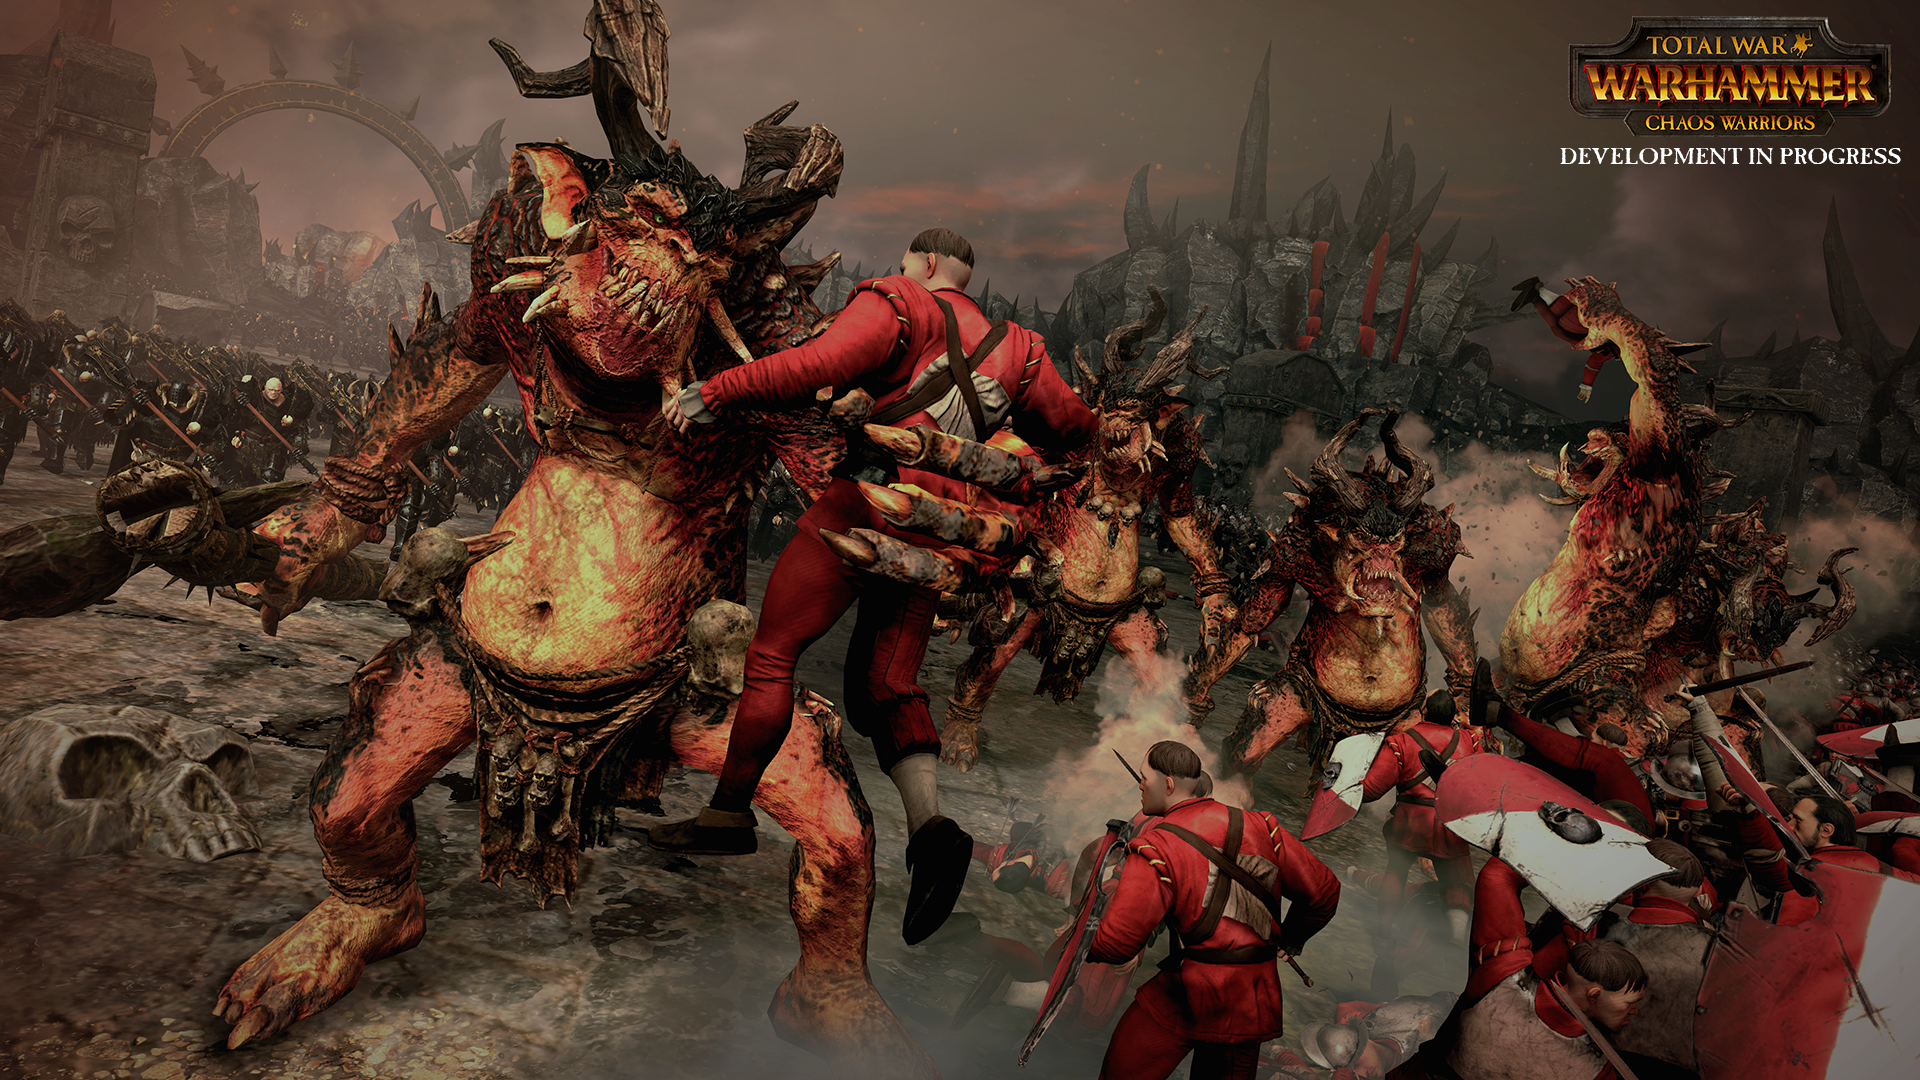 Total War: Warhammer smashes franchise records for CA